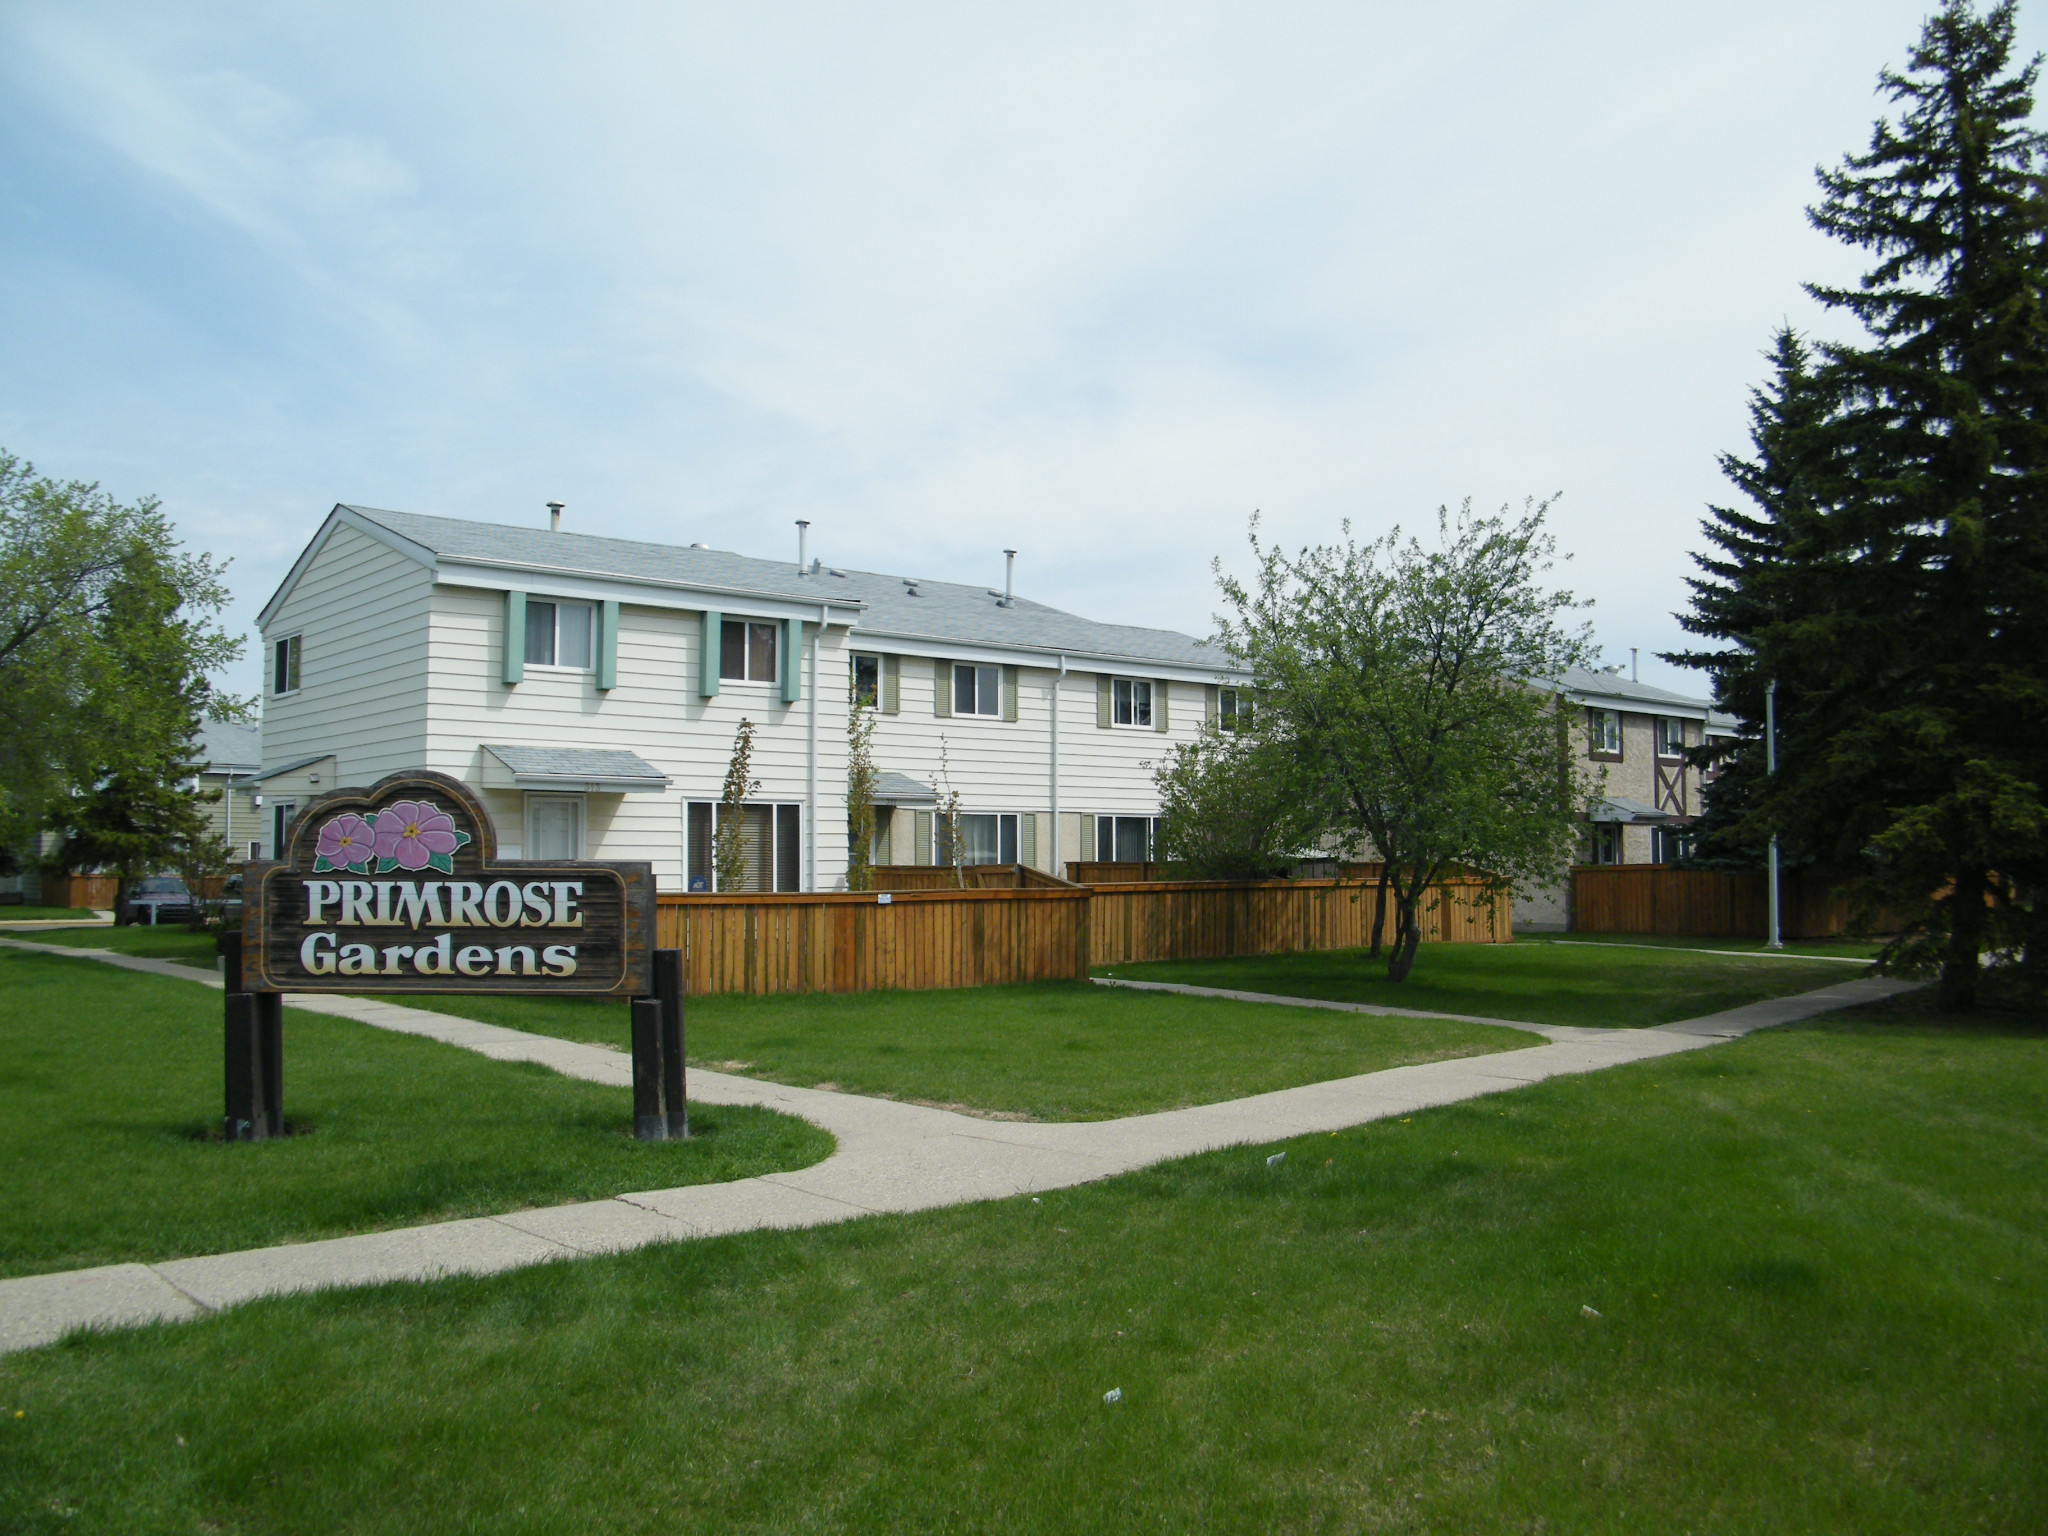 This is an example of a property located in Edmonton, Alberta whose Reserve Fund Study has been completed by Delta Appraisal Corporation